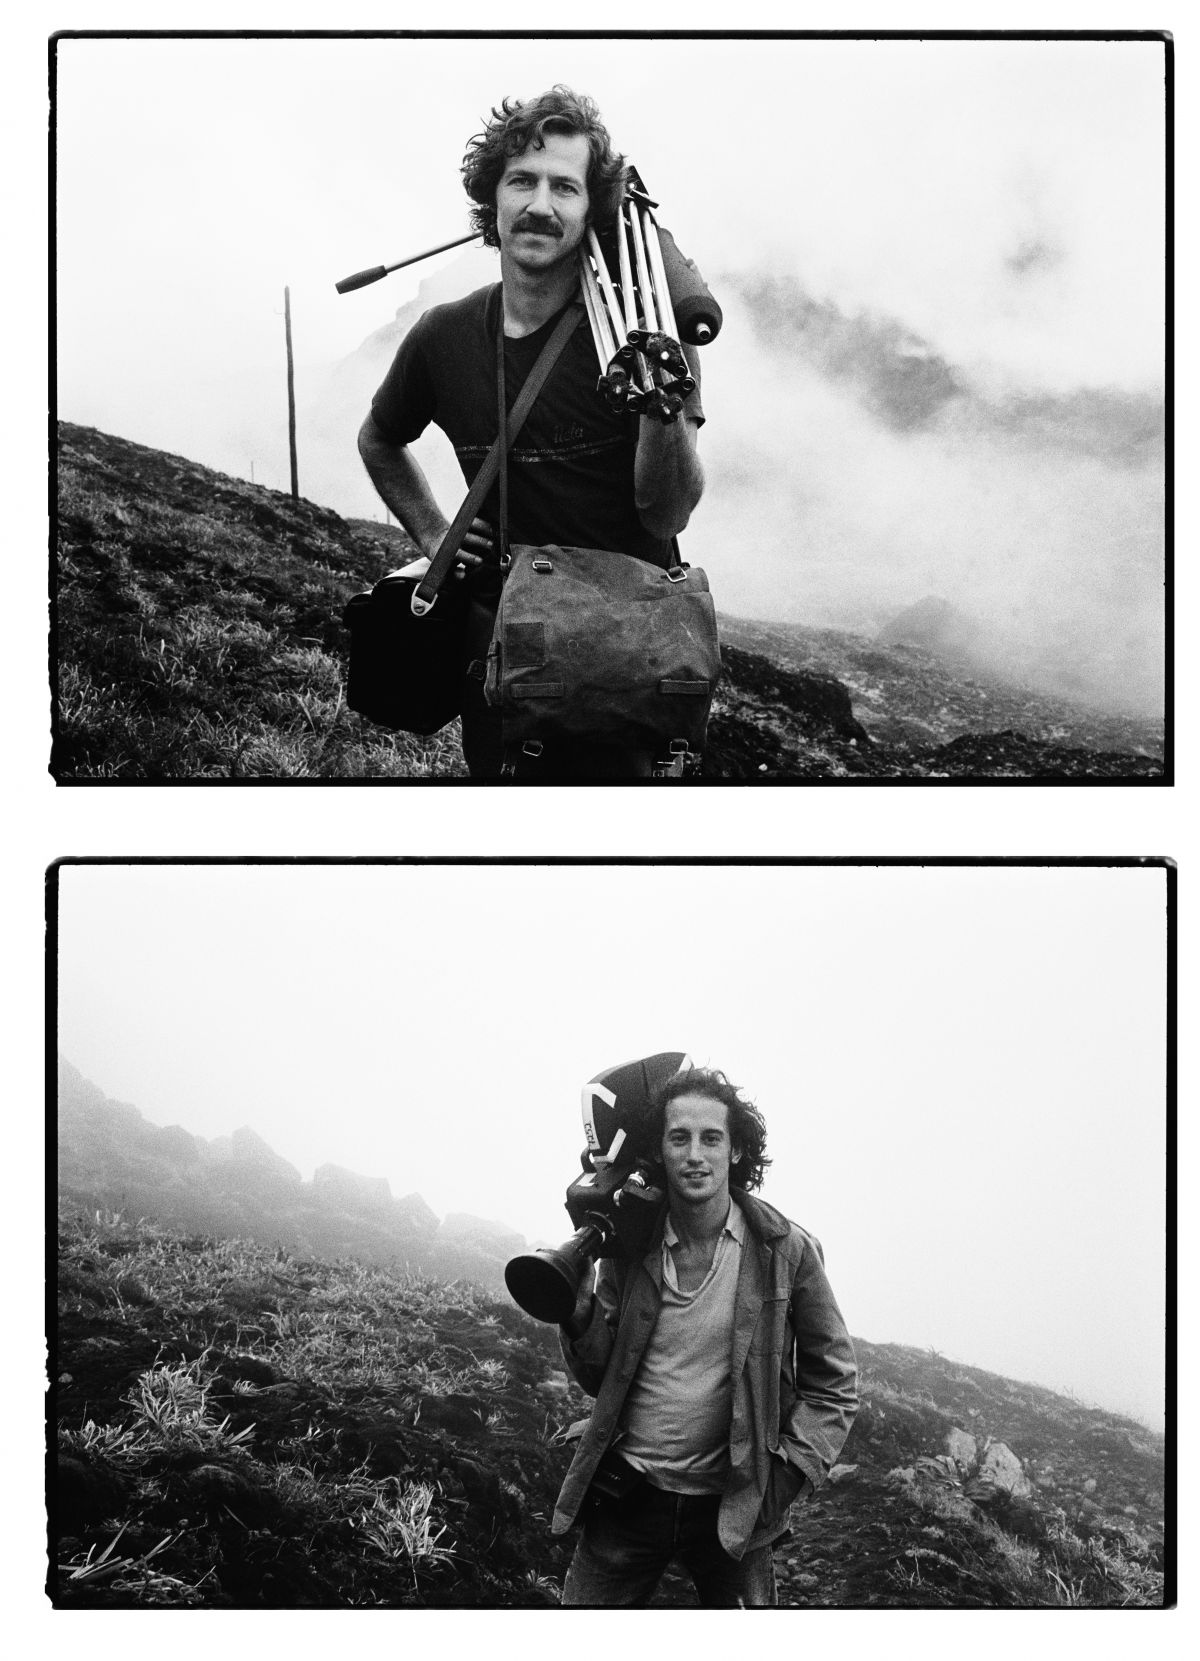 Herzog (with a Nagra recorder and sticks) prepares to climb an active volcano that is threatening to erupt. He's there to shoot footage for his documentary La Soufrière — Waiting for an Inevitable Disaster (1976) on the island of Guadeloupe, along with his trusting cinematographer, Edward Lachman, ASC.